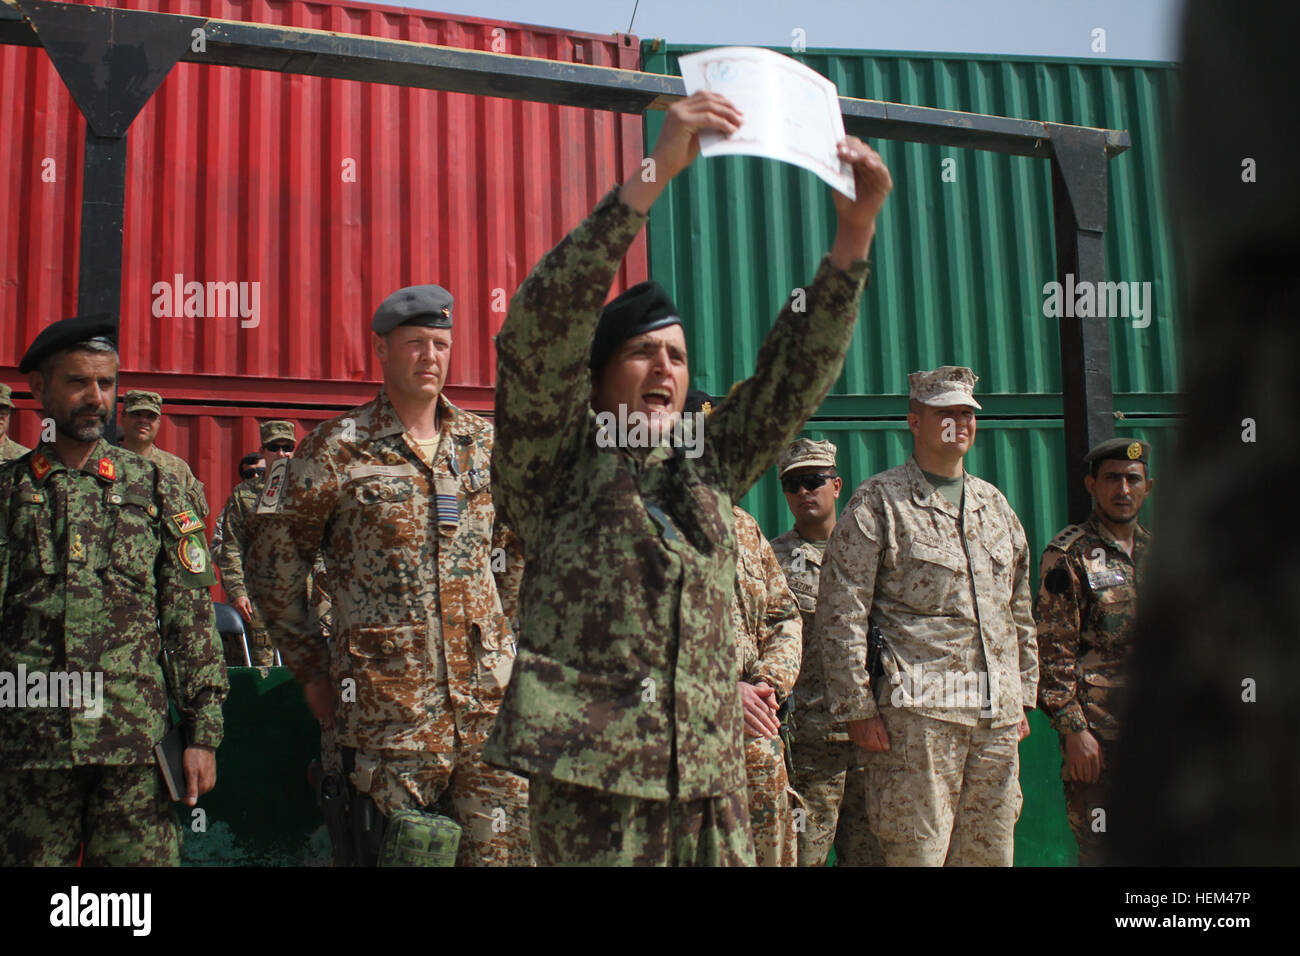 an afghan national army ier holds up his diploma after  an afghan national army ier holds up his diploma after graduating from a course at the regional military training center at camp shorabak